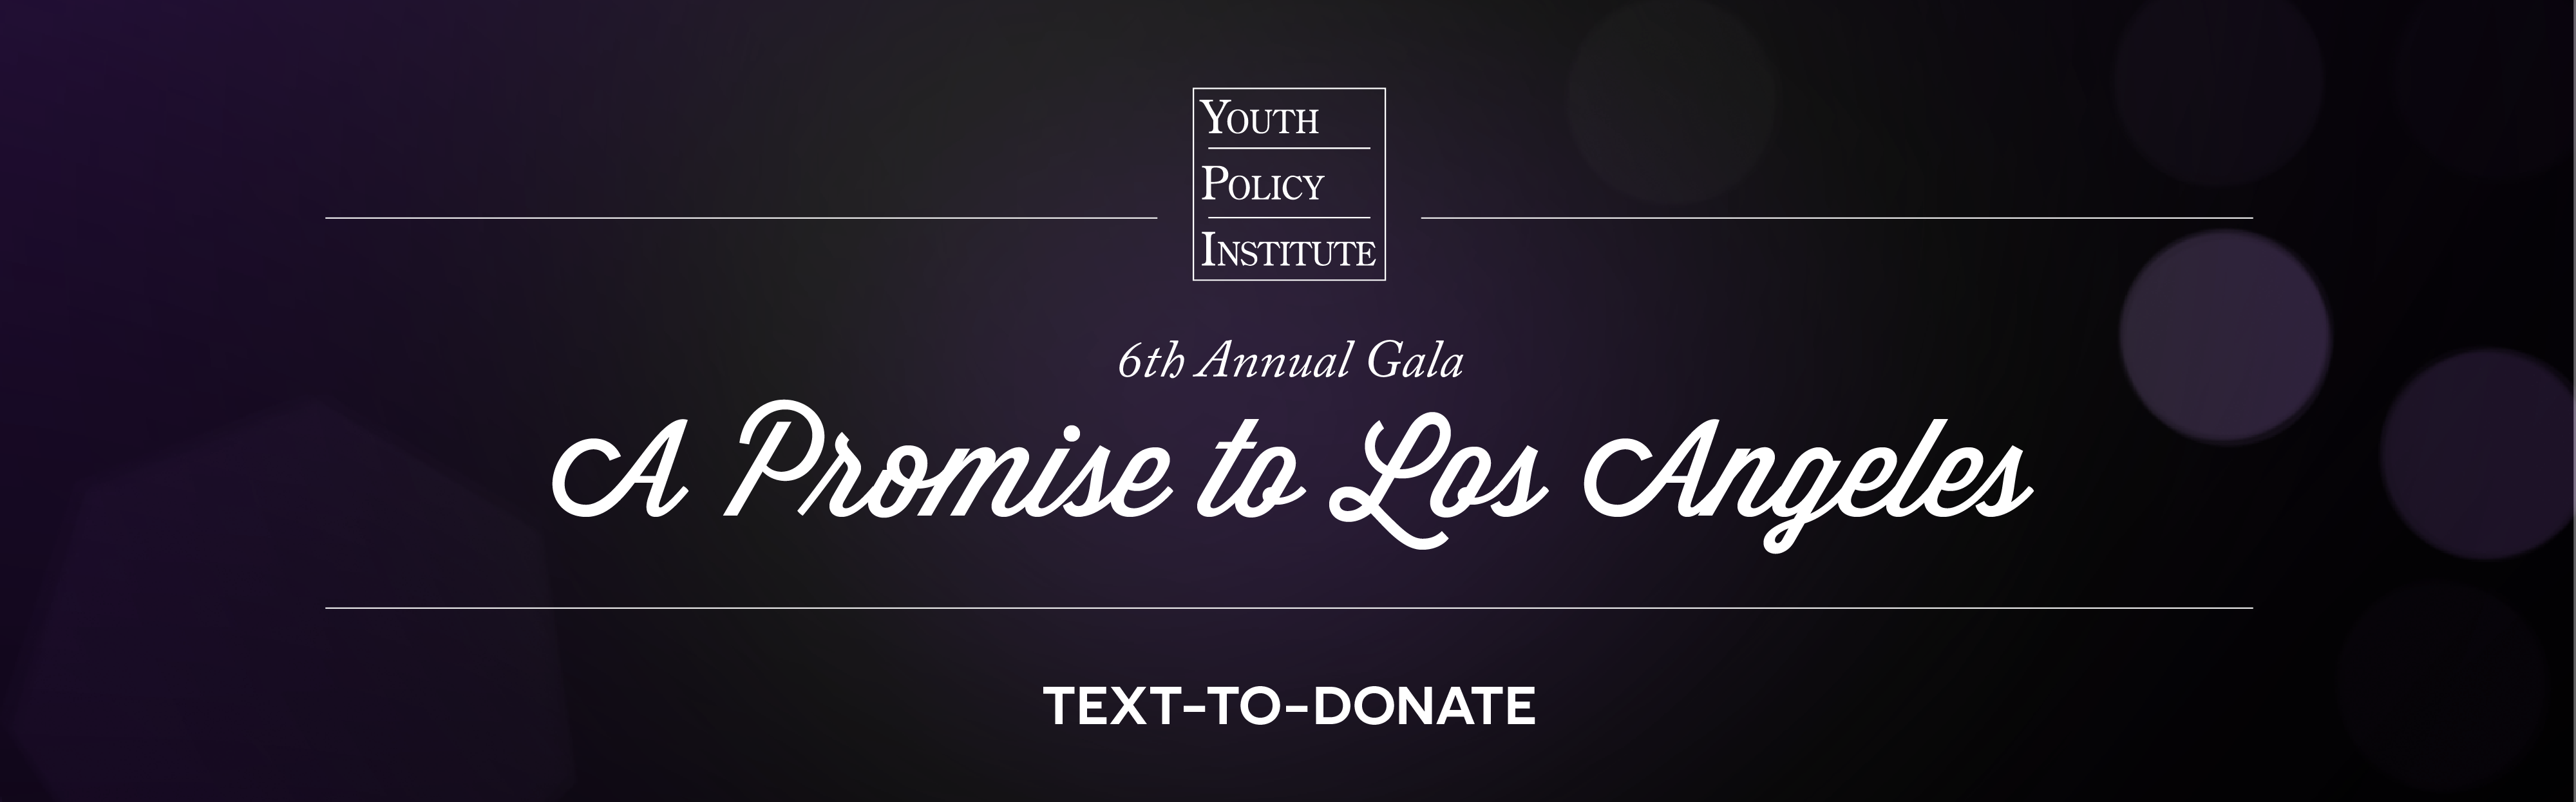 gala_text-to-donate.png